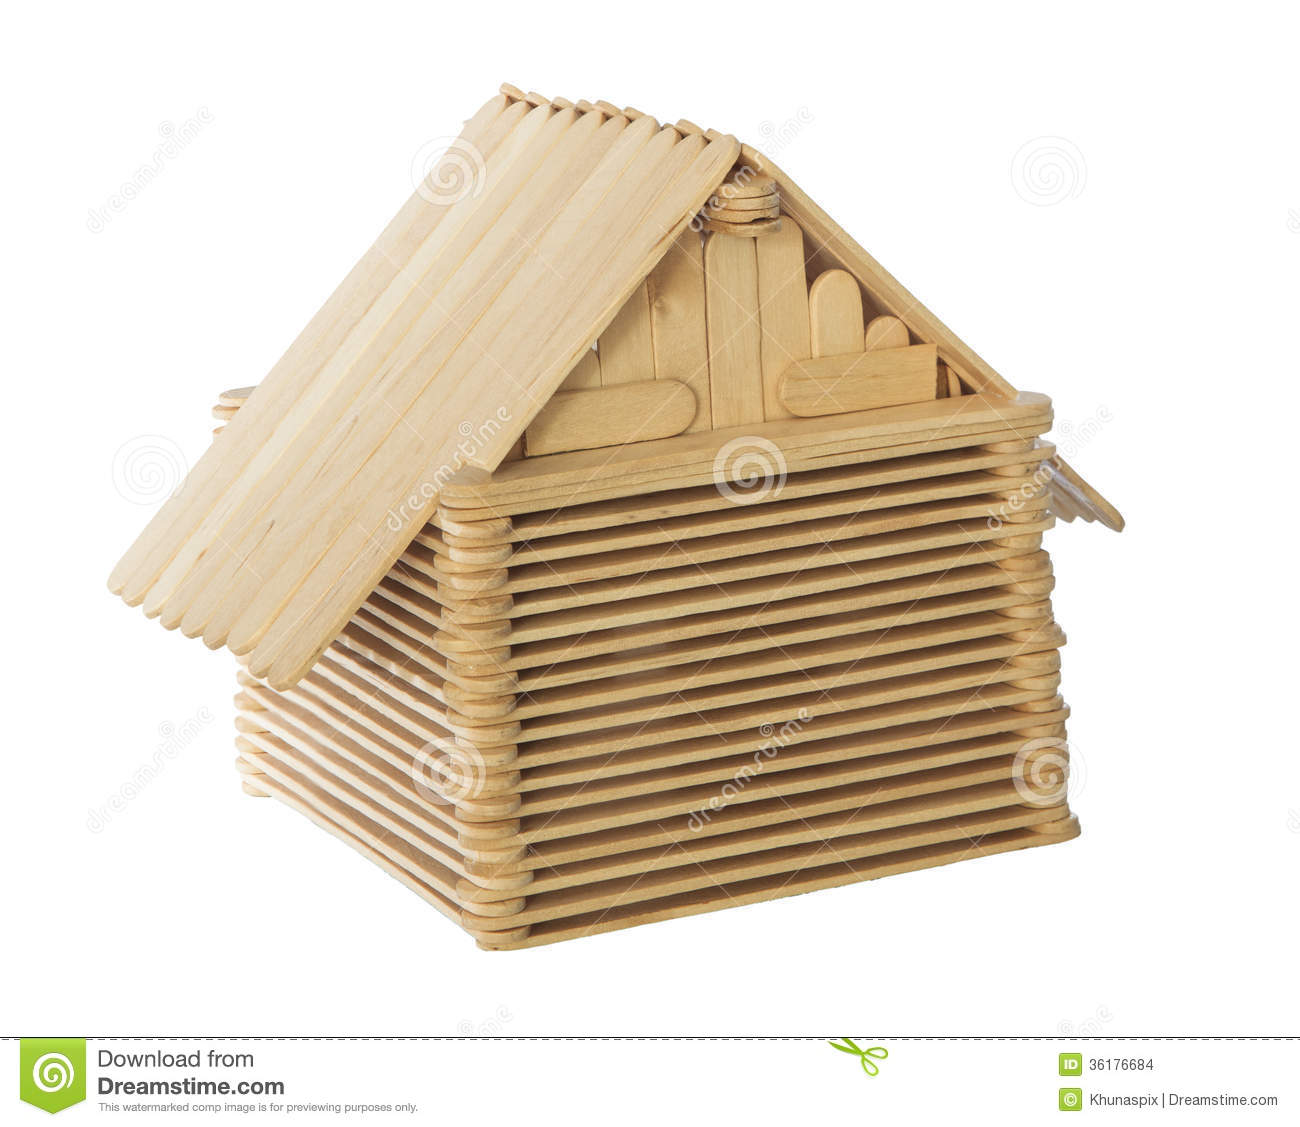 Stick House Clipart Wood Stick Home Model Isolated #MBcuLH.